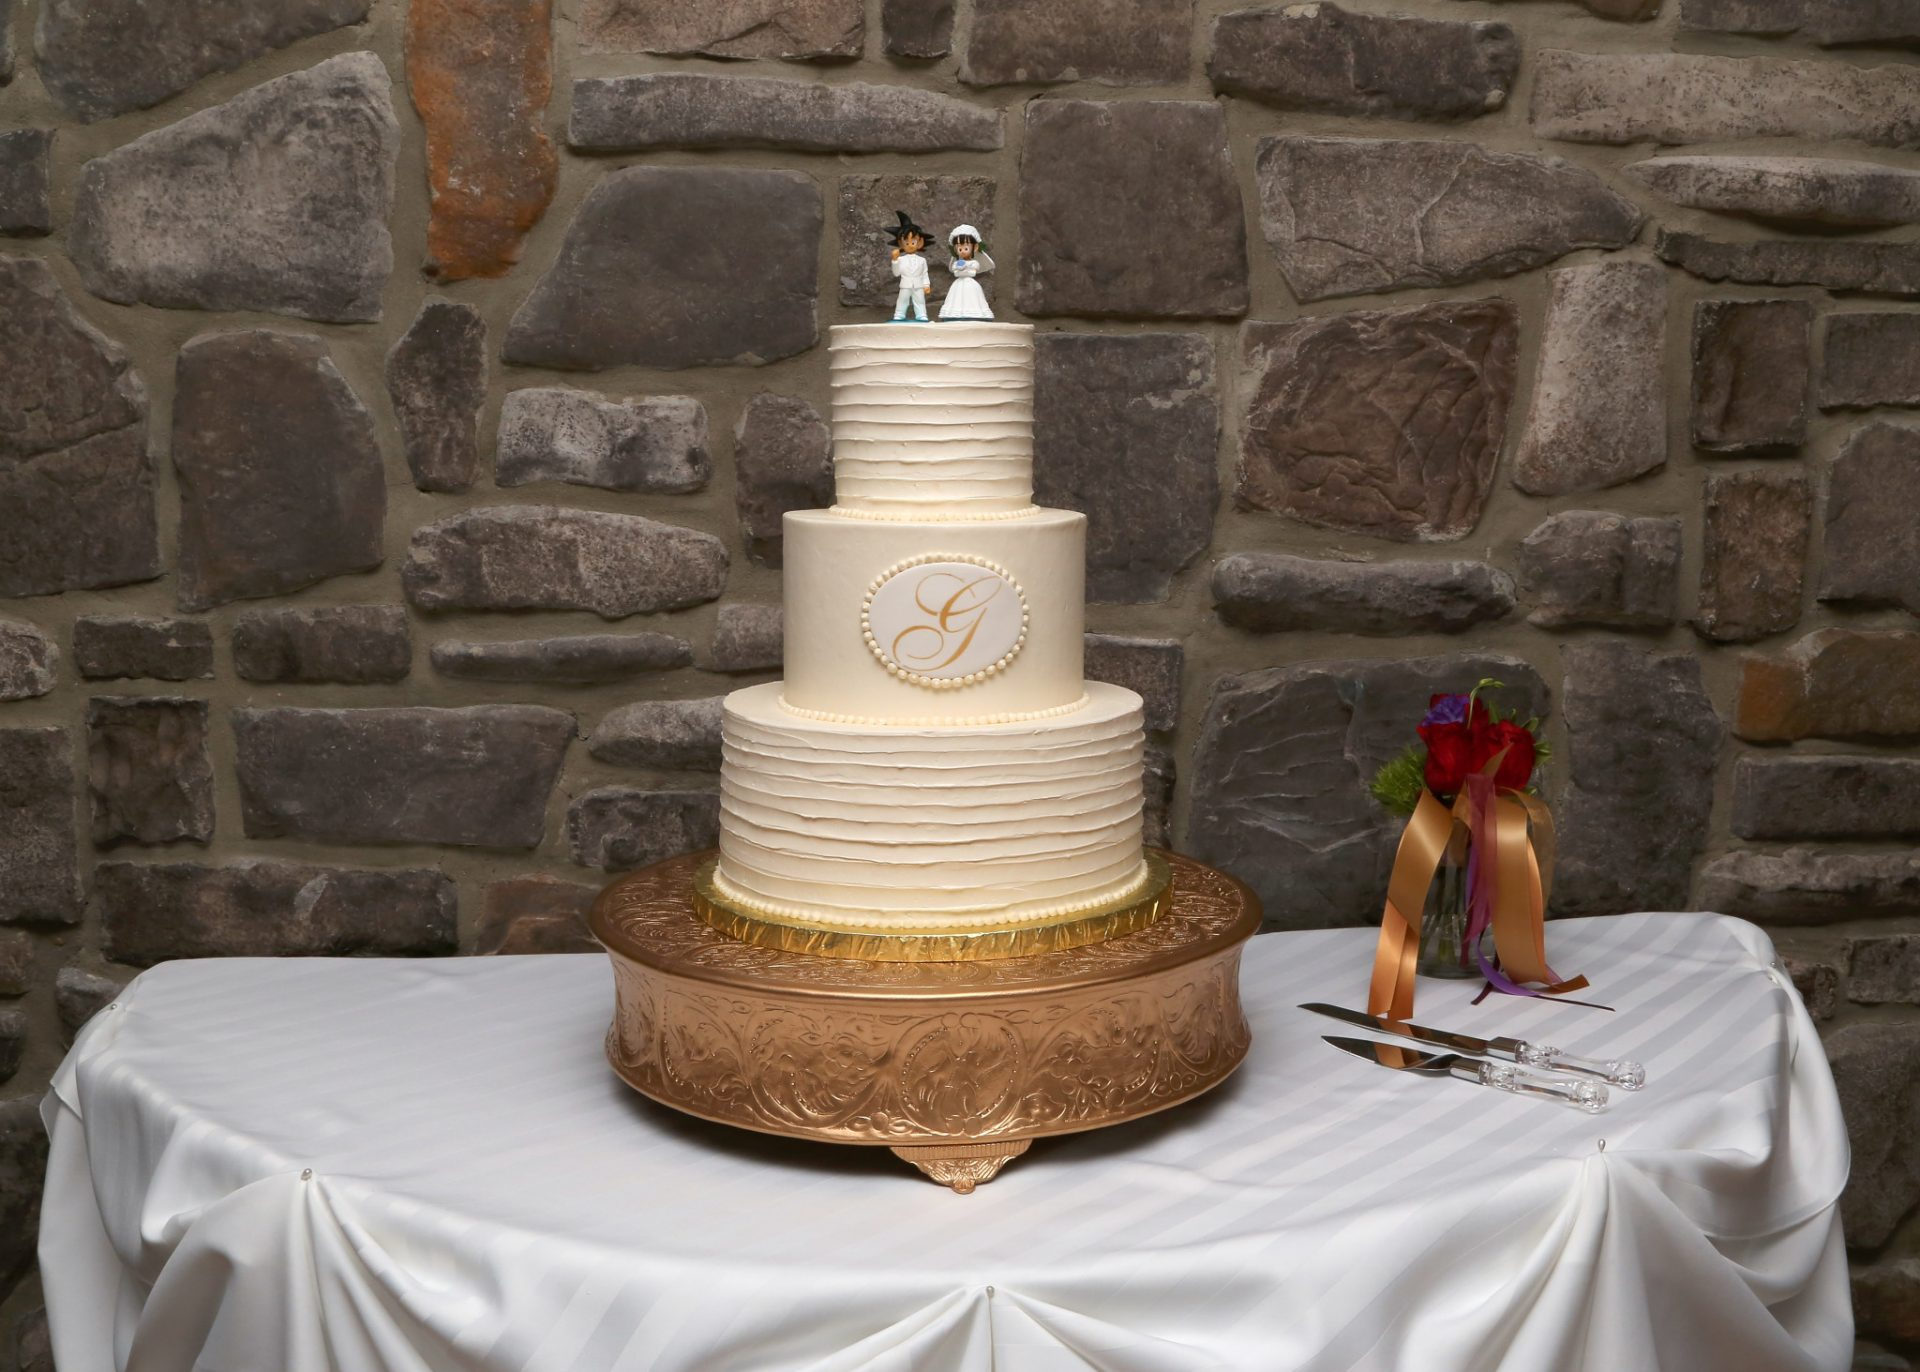 Wedding cake with gold cake stand